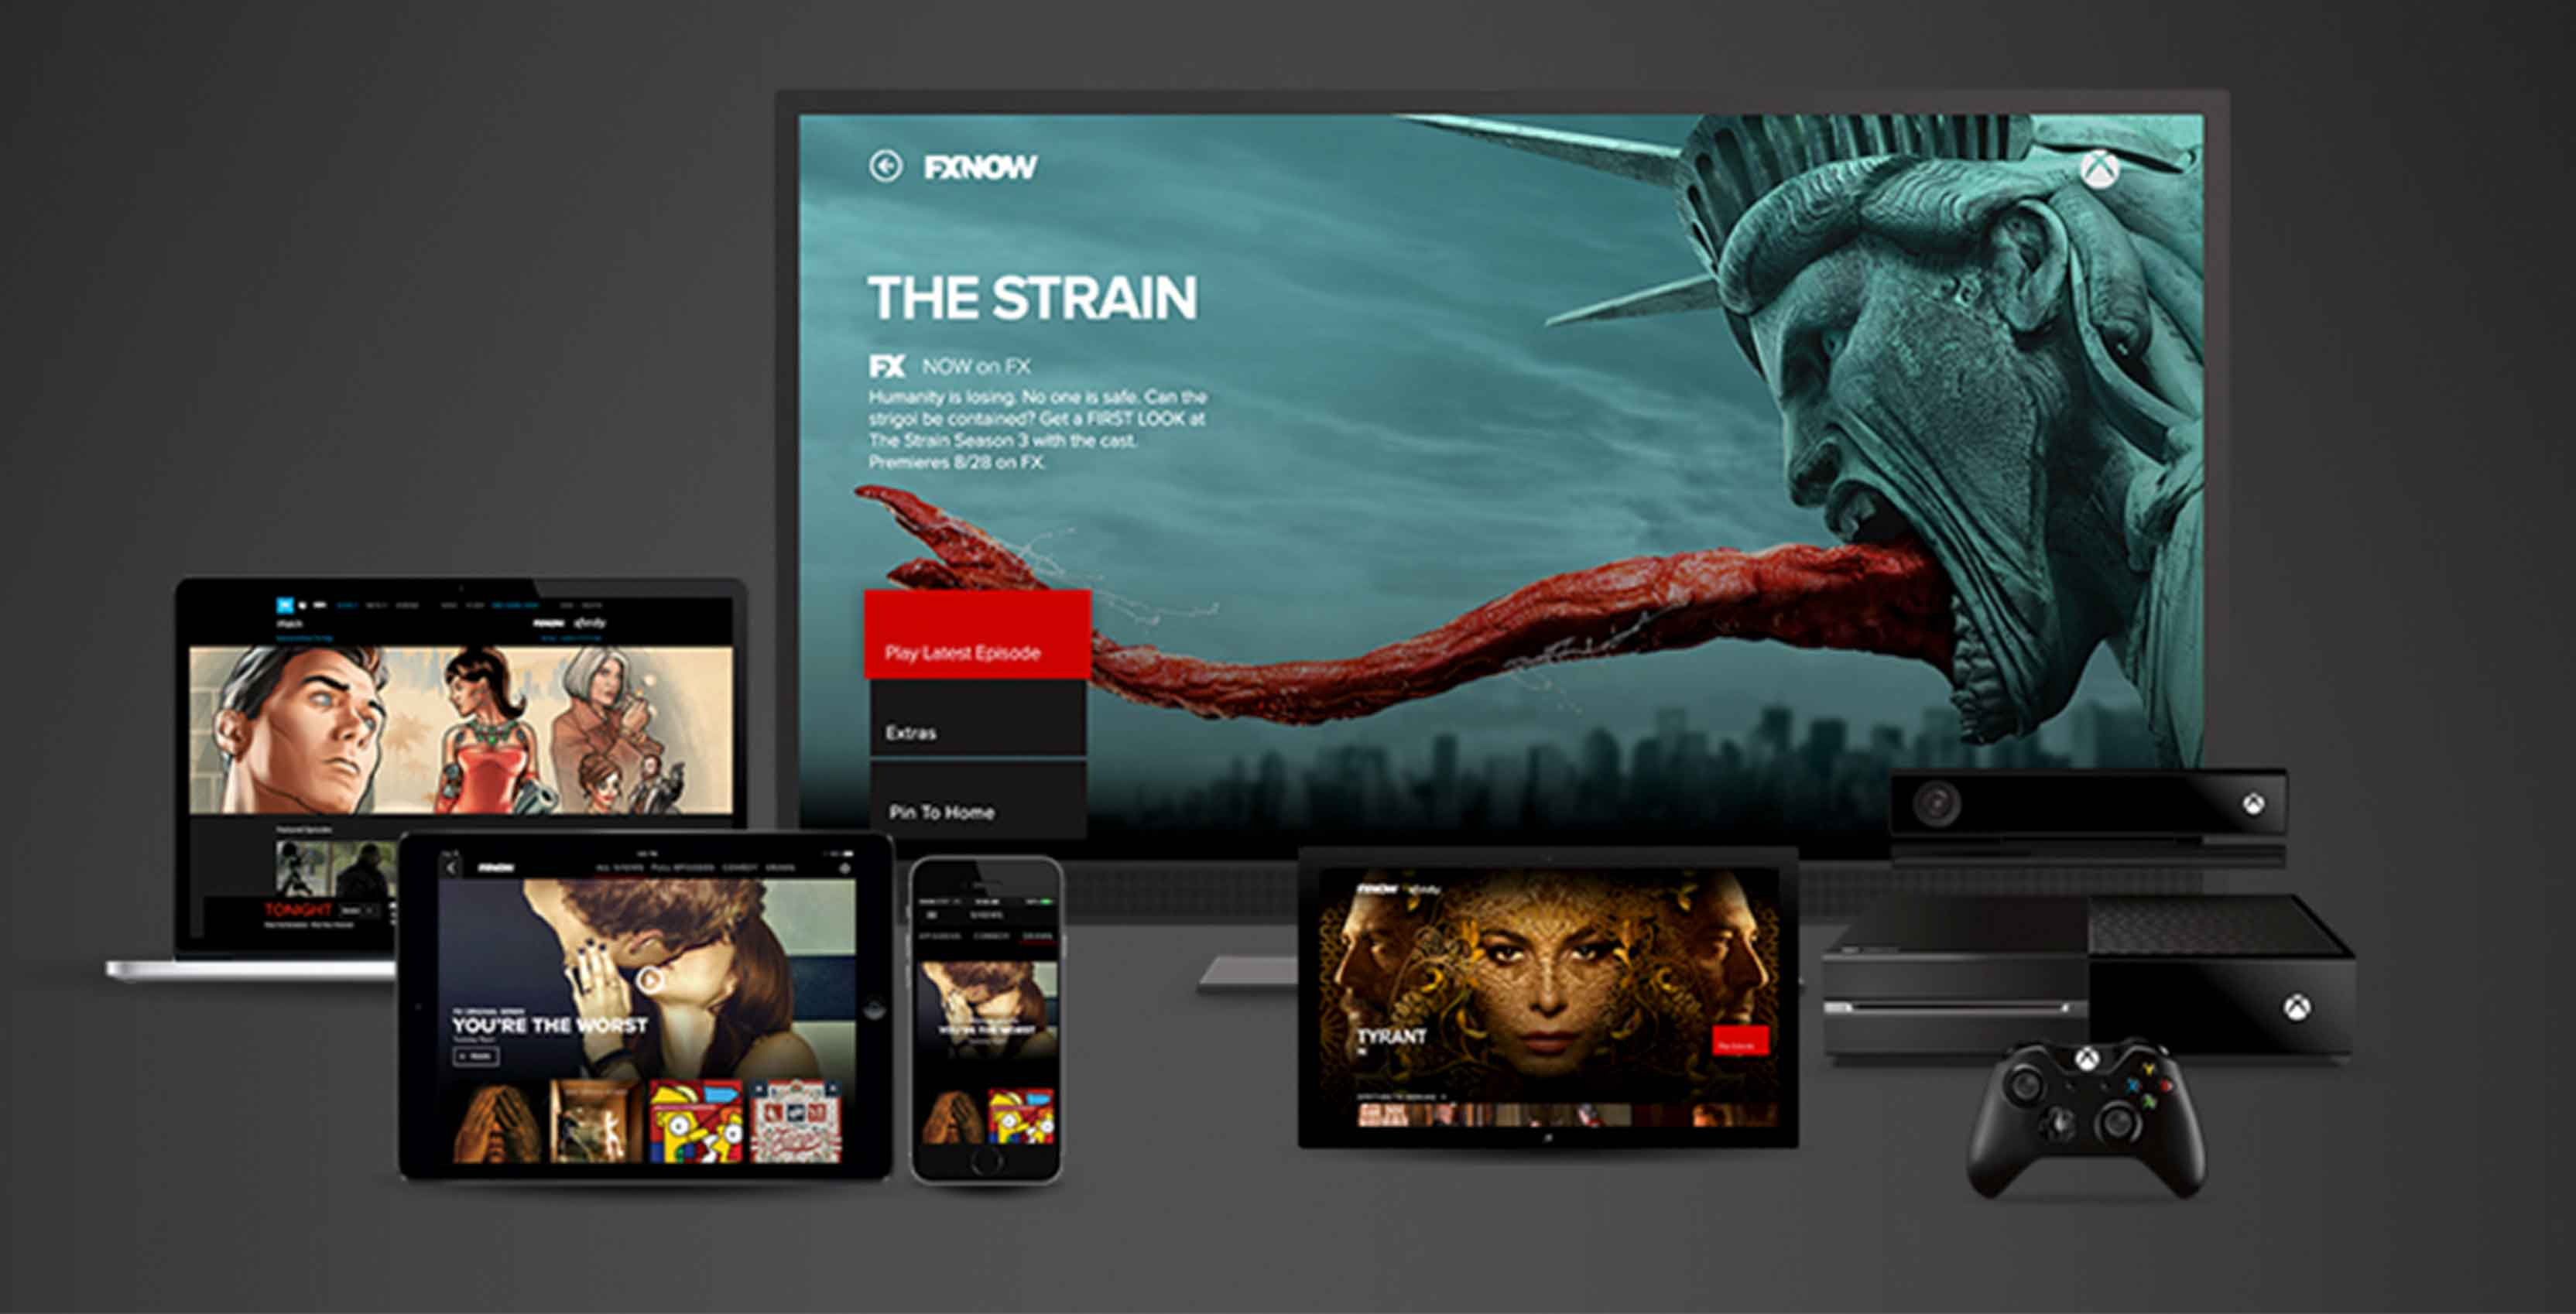 FXNow app supported devices with Apple TV